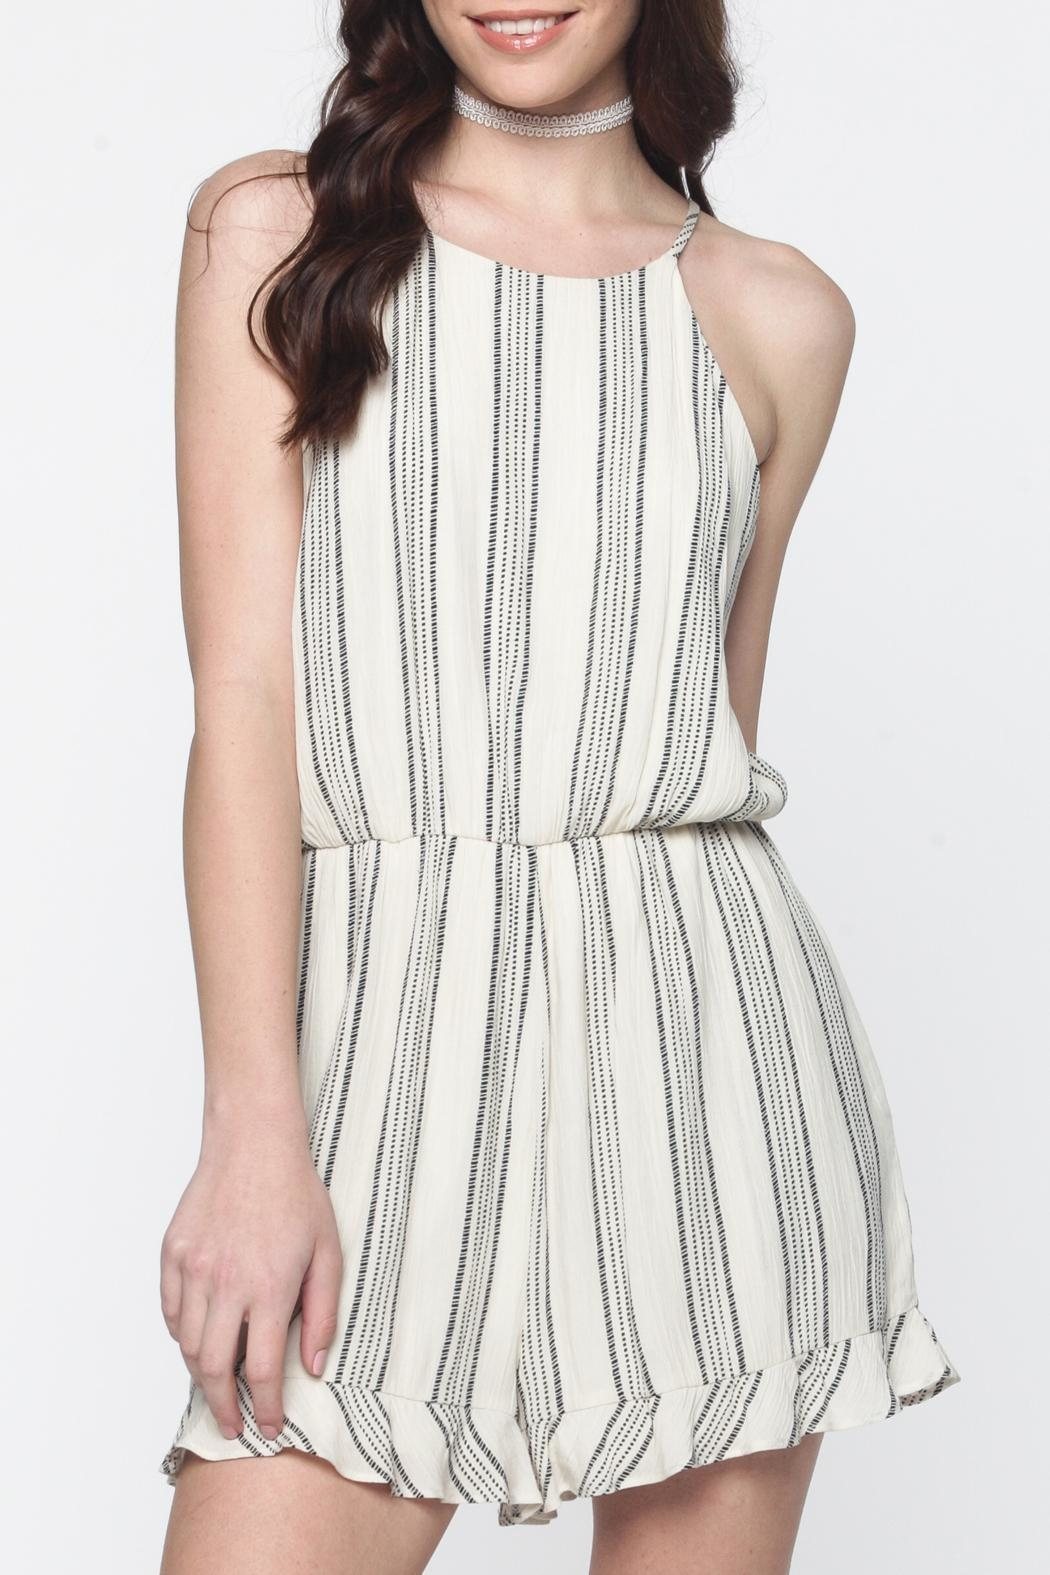 Everly Striped Bow-Tie-Back Romper - Main Image